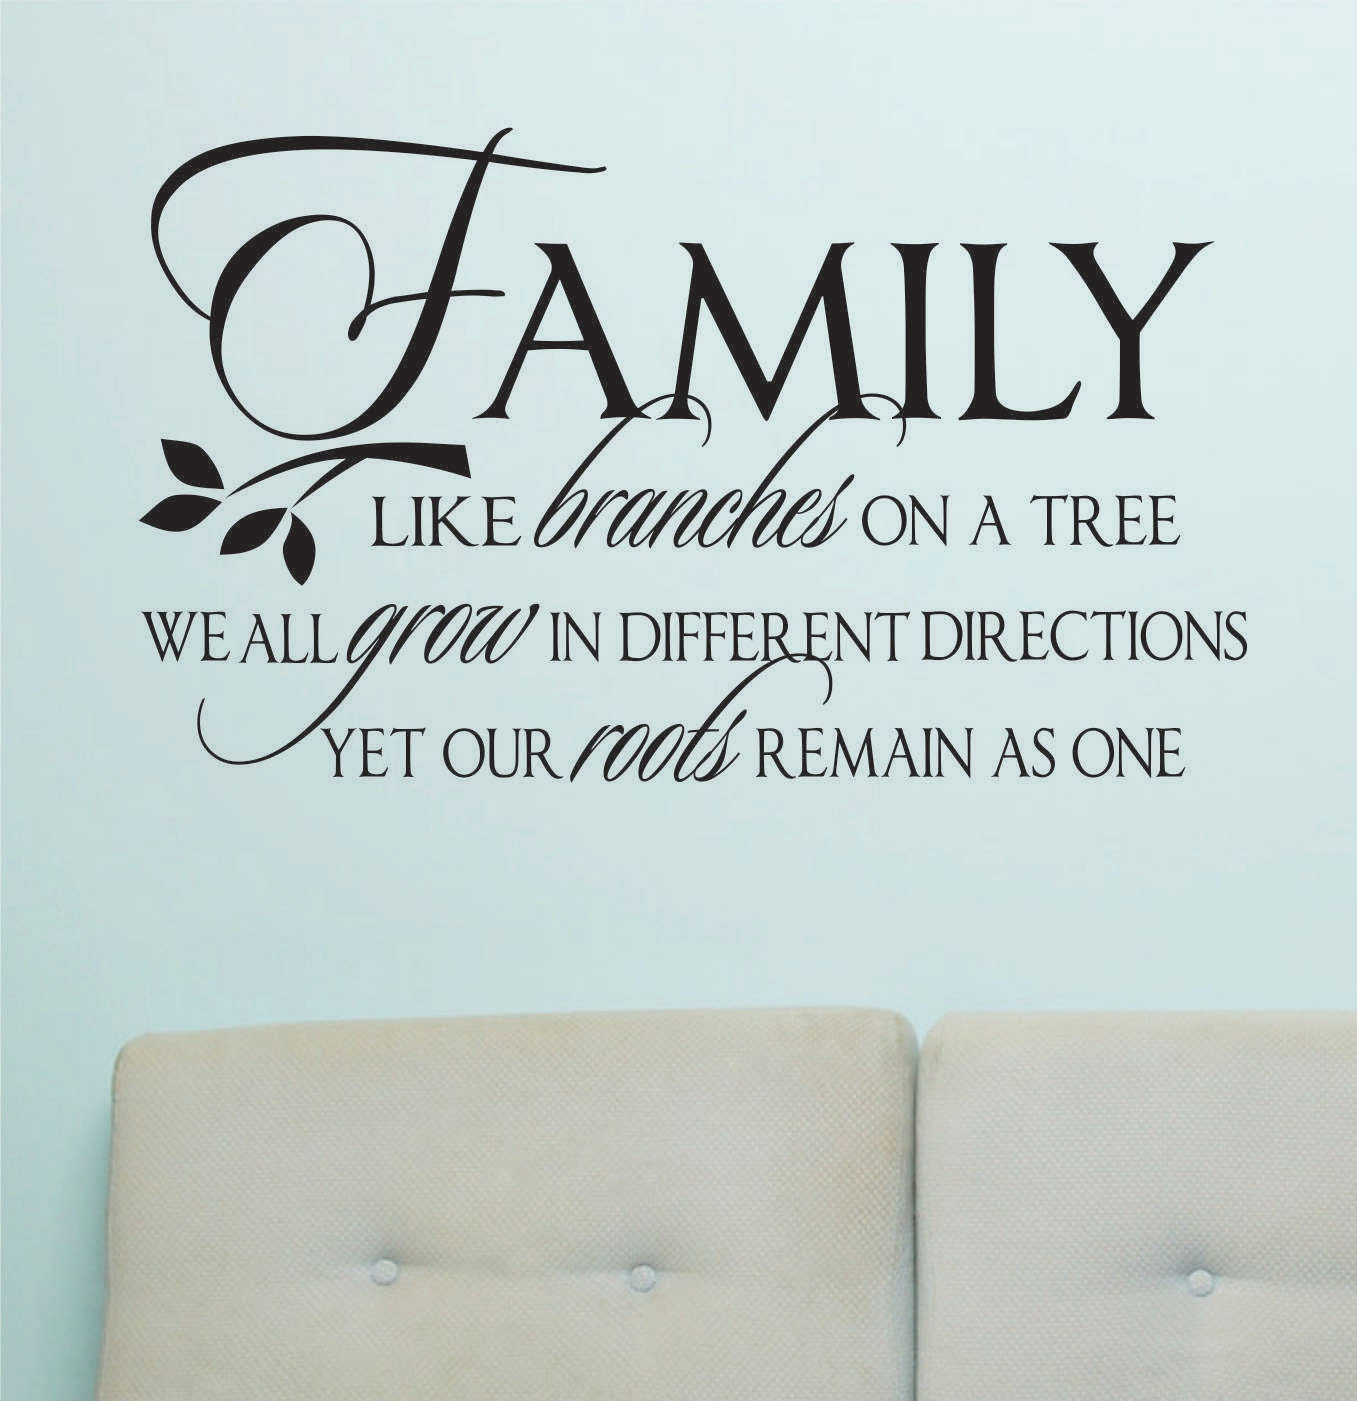 Family Quotes On Pinterest: Pinterest Family Tree Quotes. QuotesGram